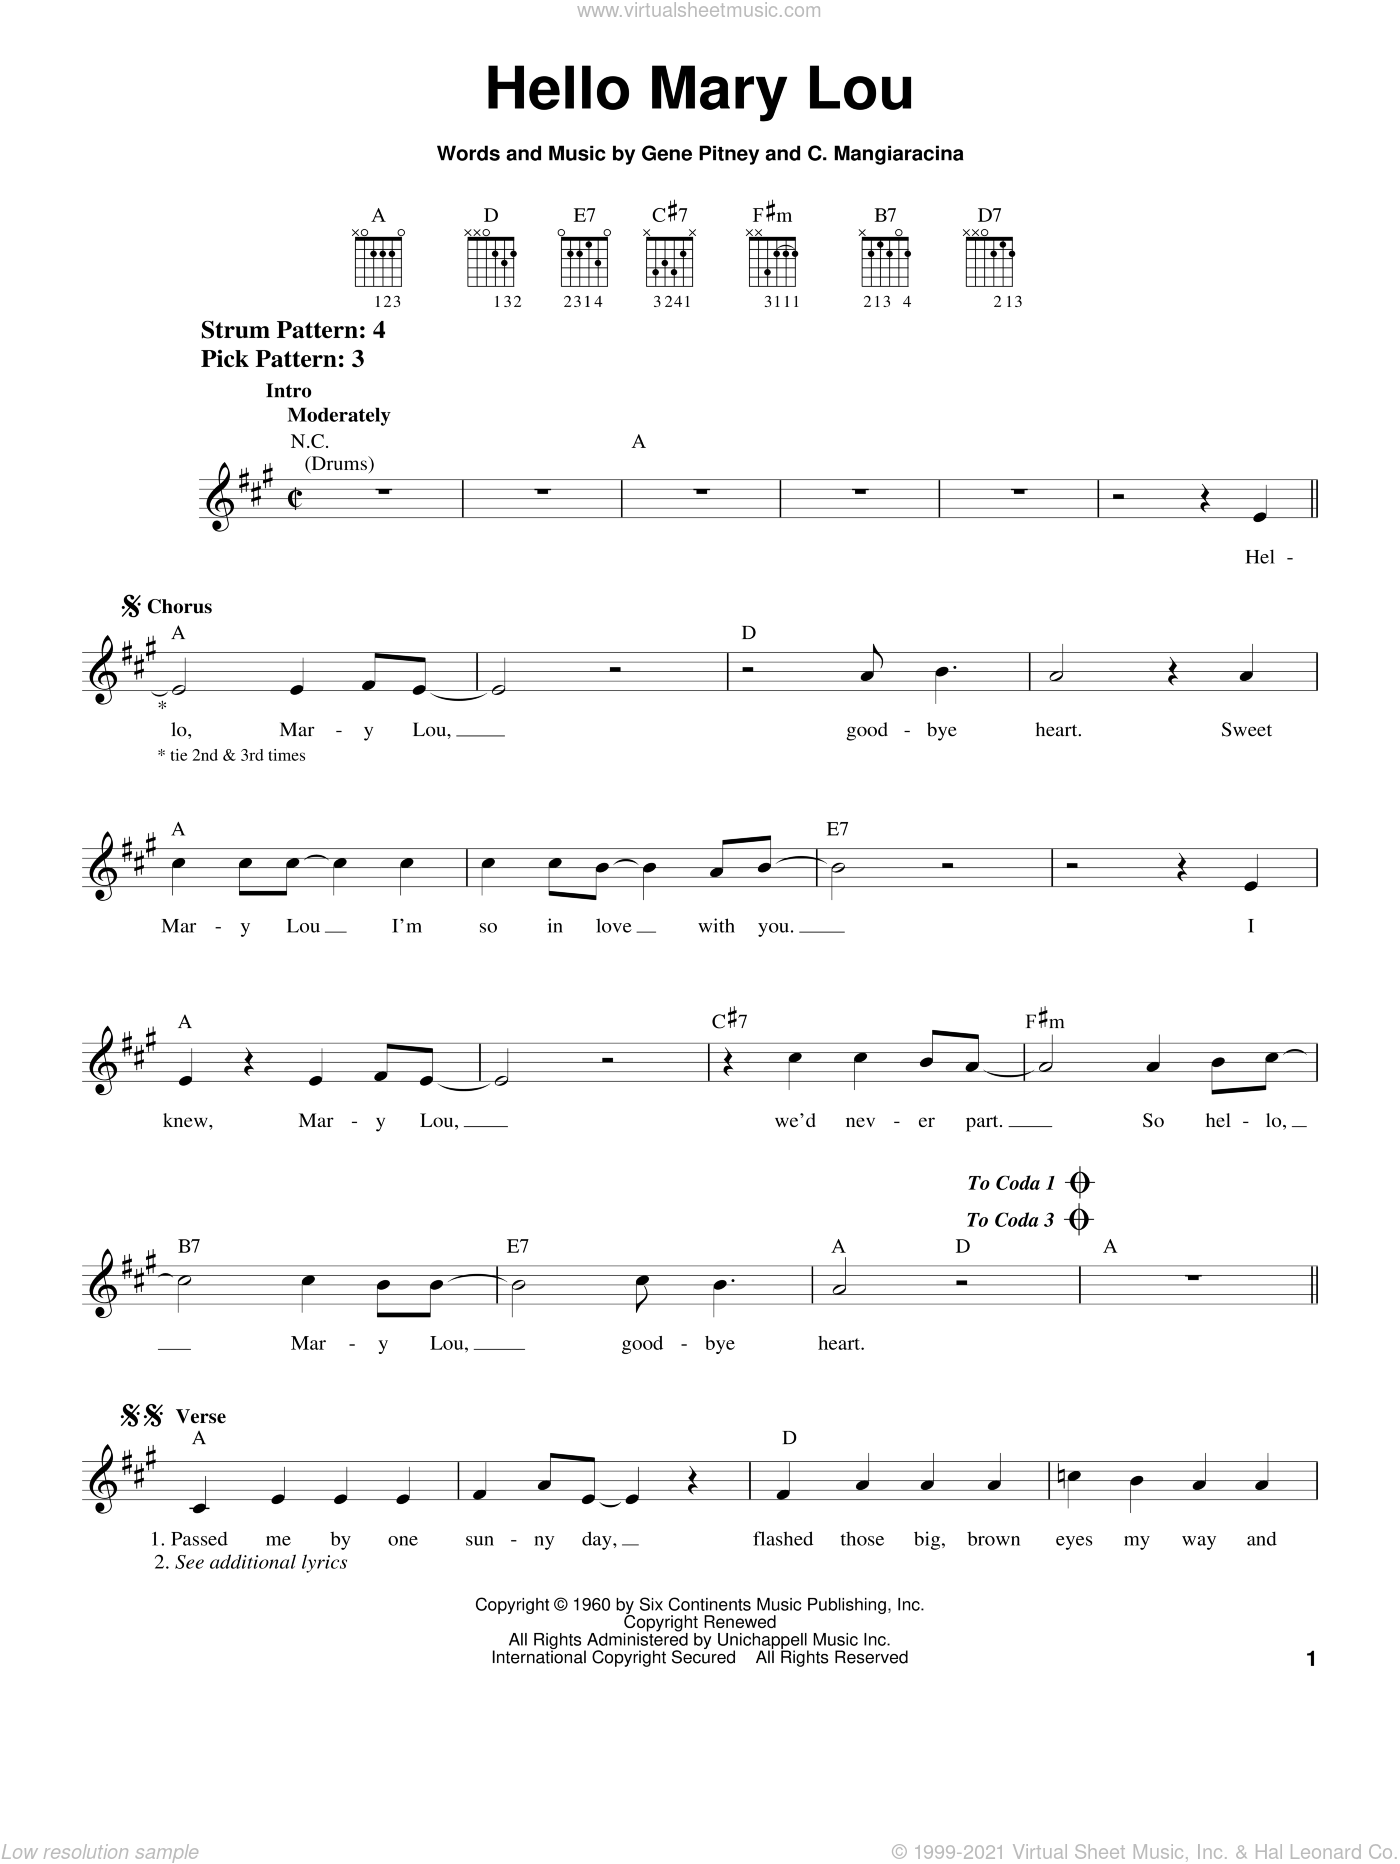 Hello Mary Lou sheet music for guitar solo (chords) by Ricky Nelson, Creedence Clearwater Revival, The Statler Brothers, C. Mangiaracina and Gene Pitney, easy guitar (chords)